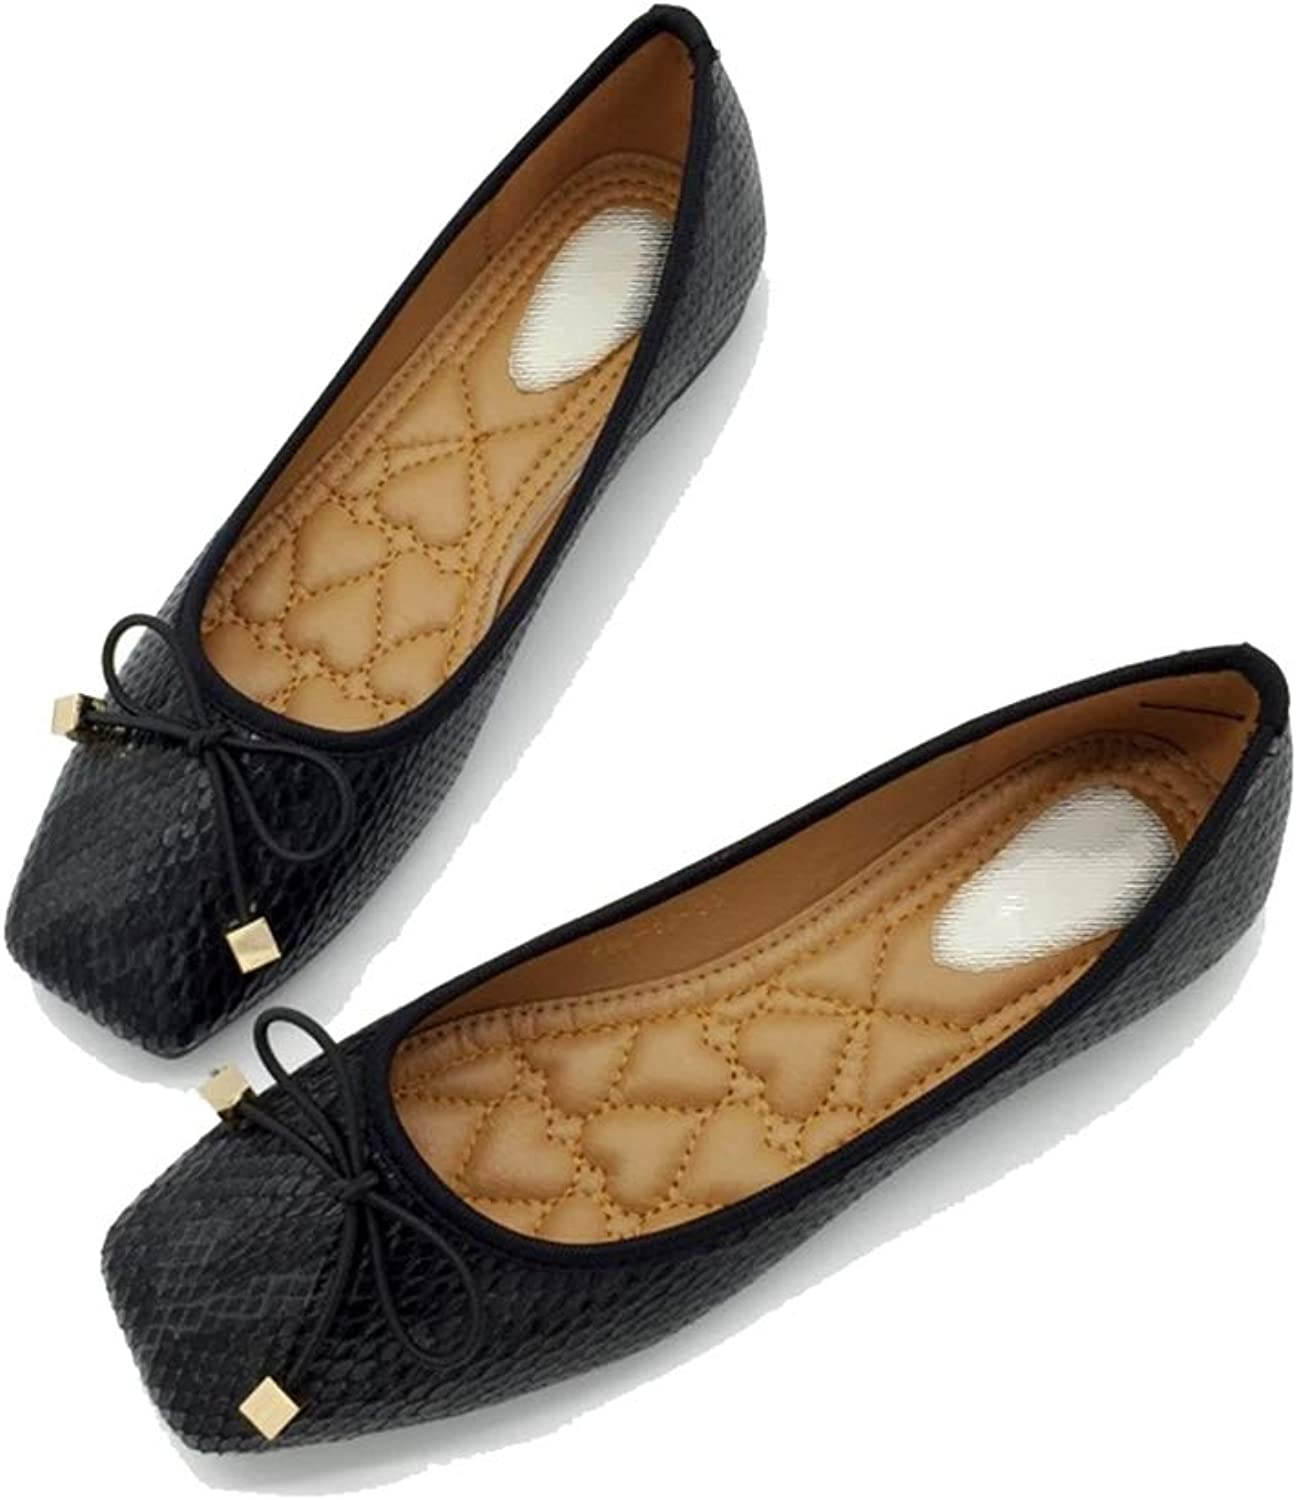 August Jim Women Flats shoes,Ladieds Square Toe Slip-on Ballet Flat shoes